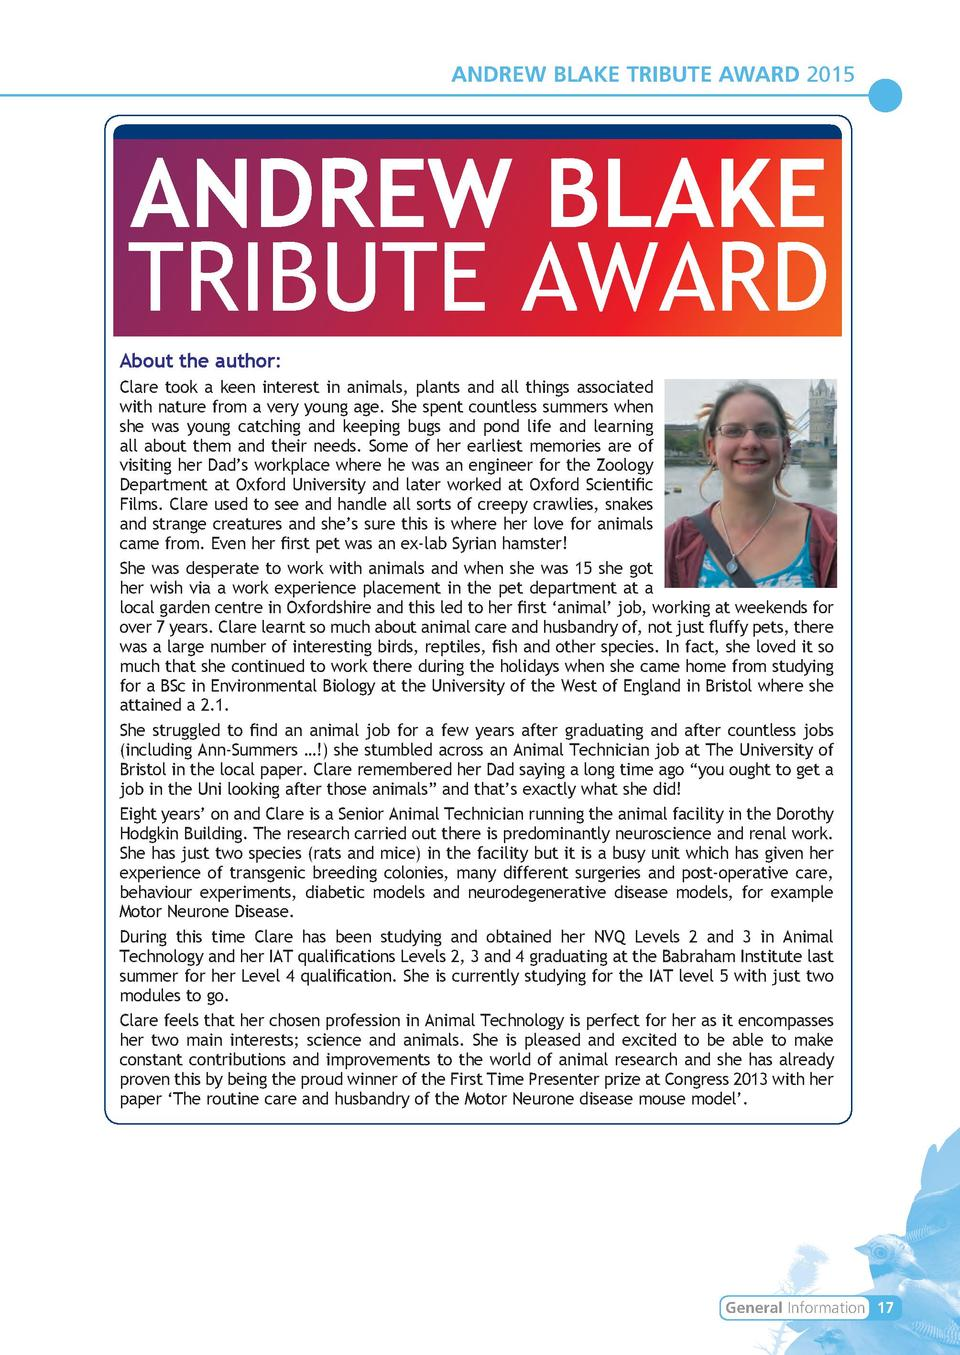 ANDREW BLAKE TRIBUTE AWARD 2015  ANDREW BLAKE TRIBUTE AWARD About the author  Clare took a keen interest in animals, plant...